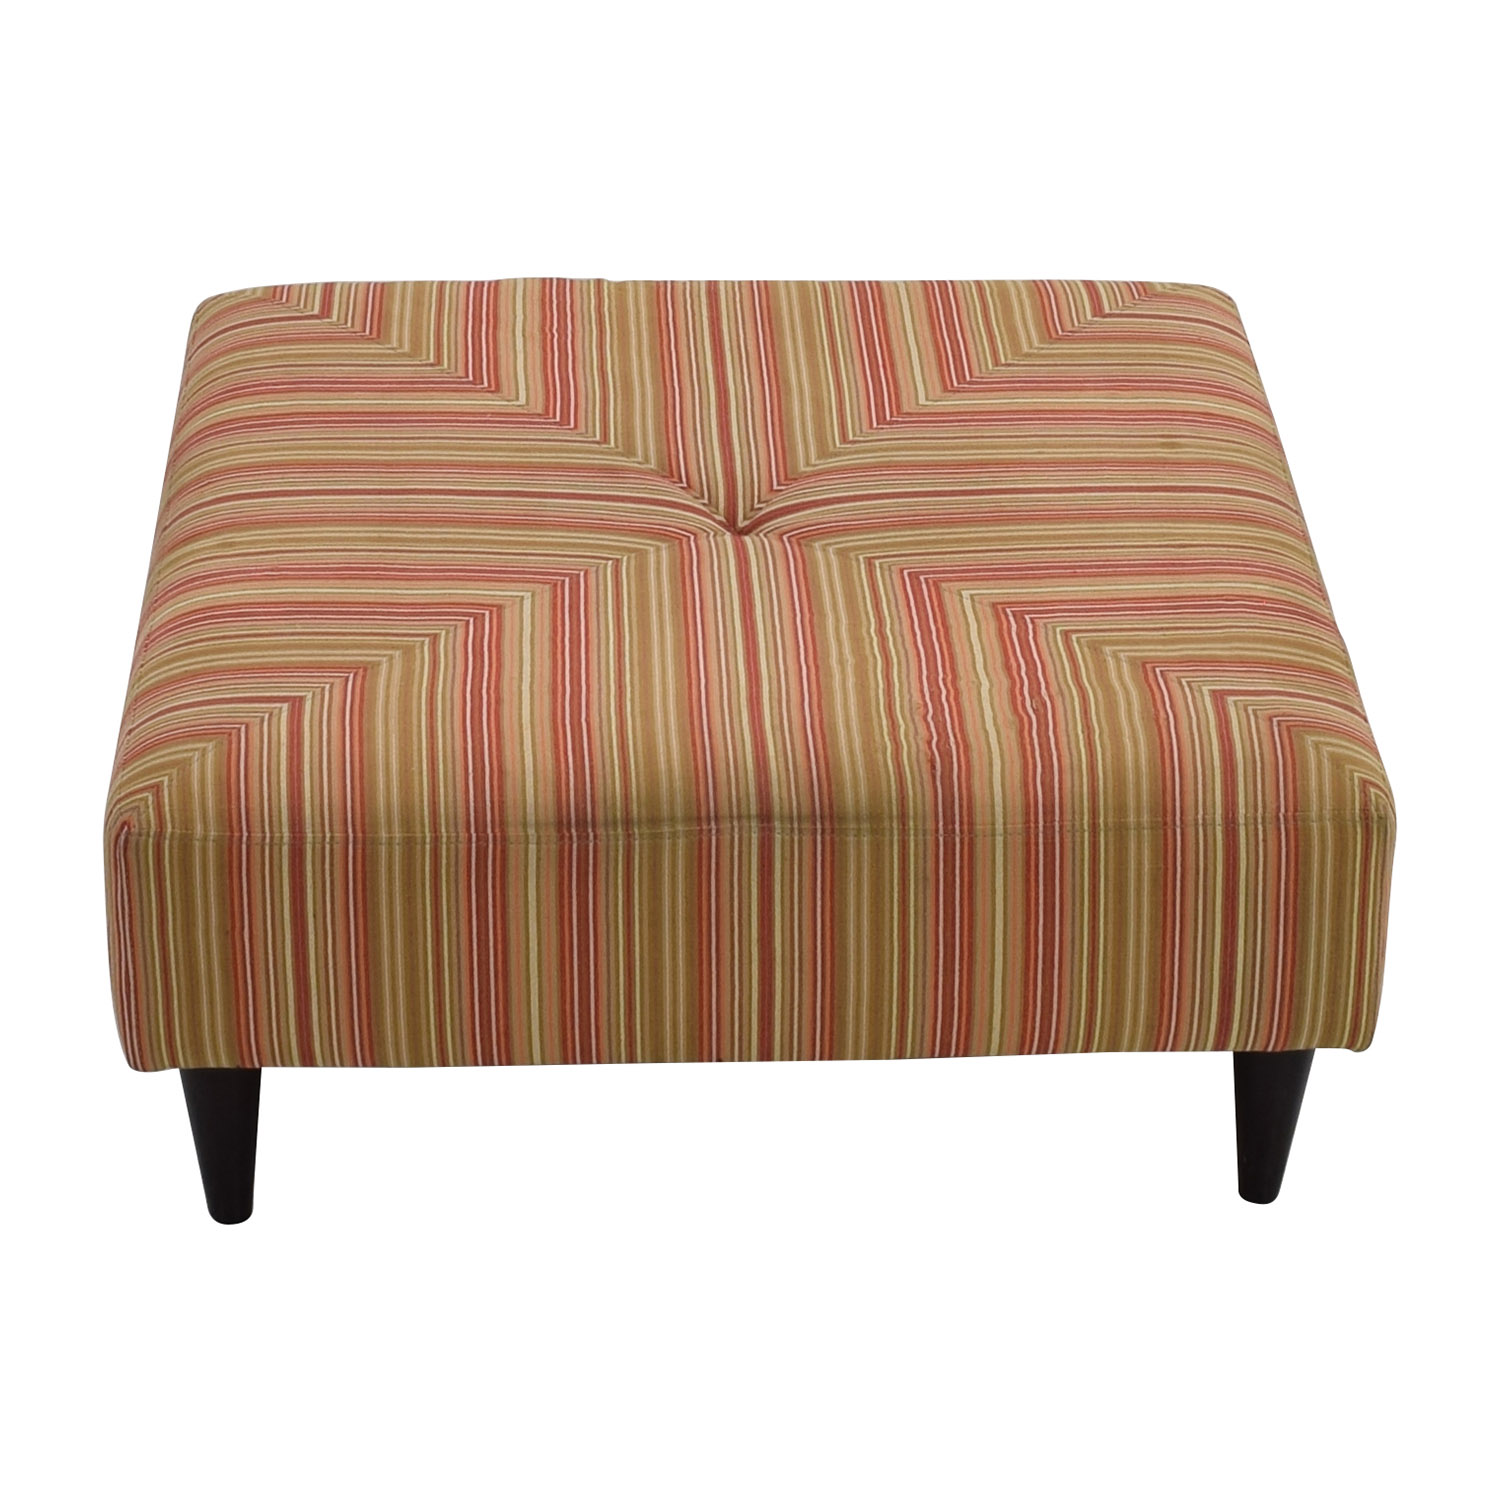 85 OFF Macys Macys Red and Green Striped Upholstered Ottoman